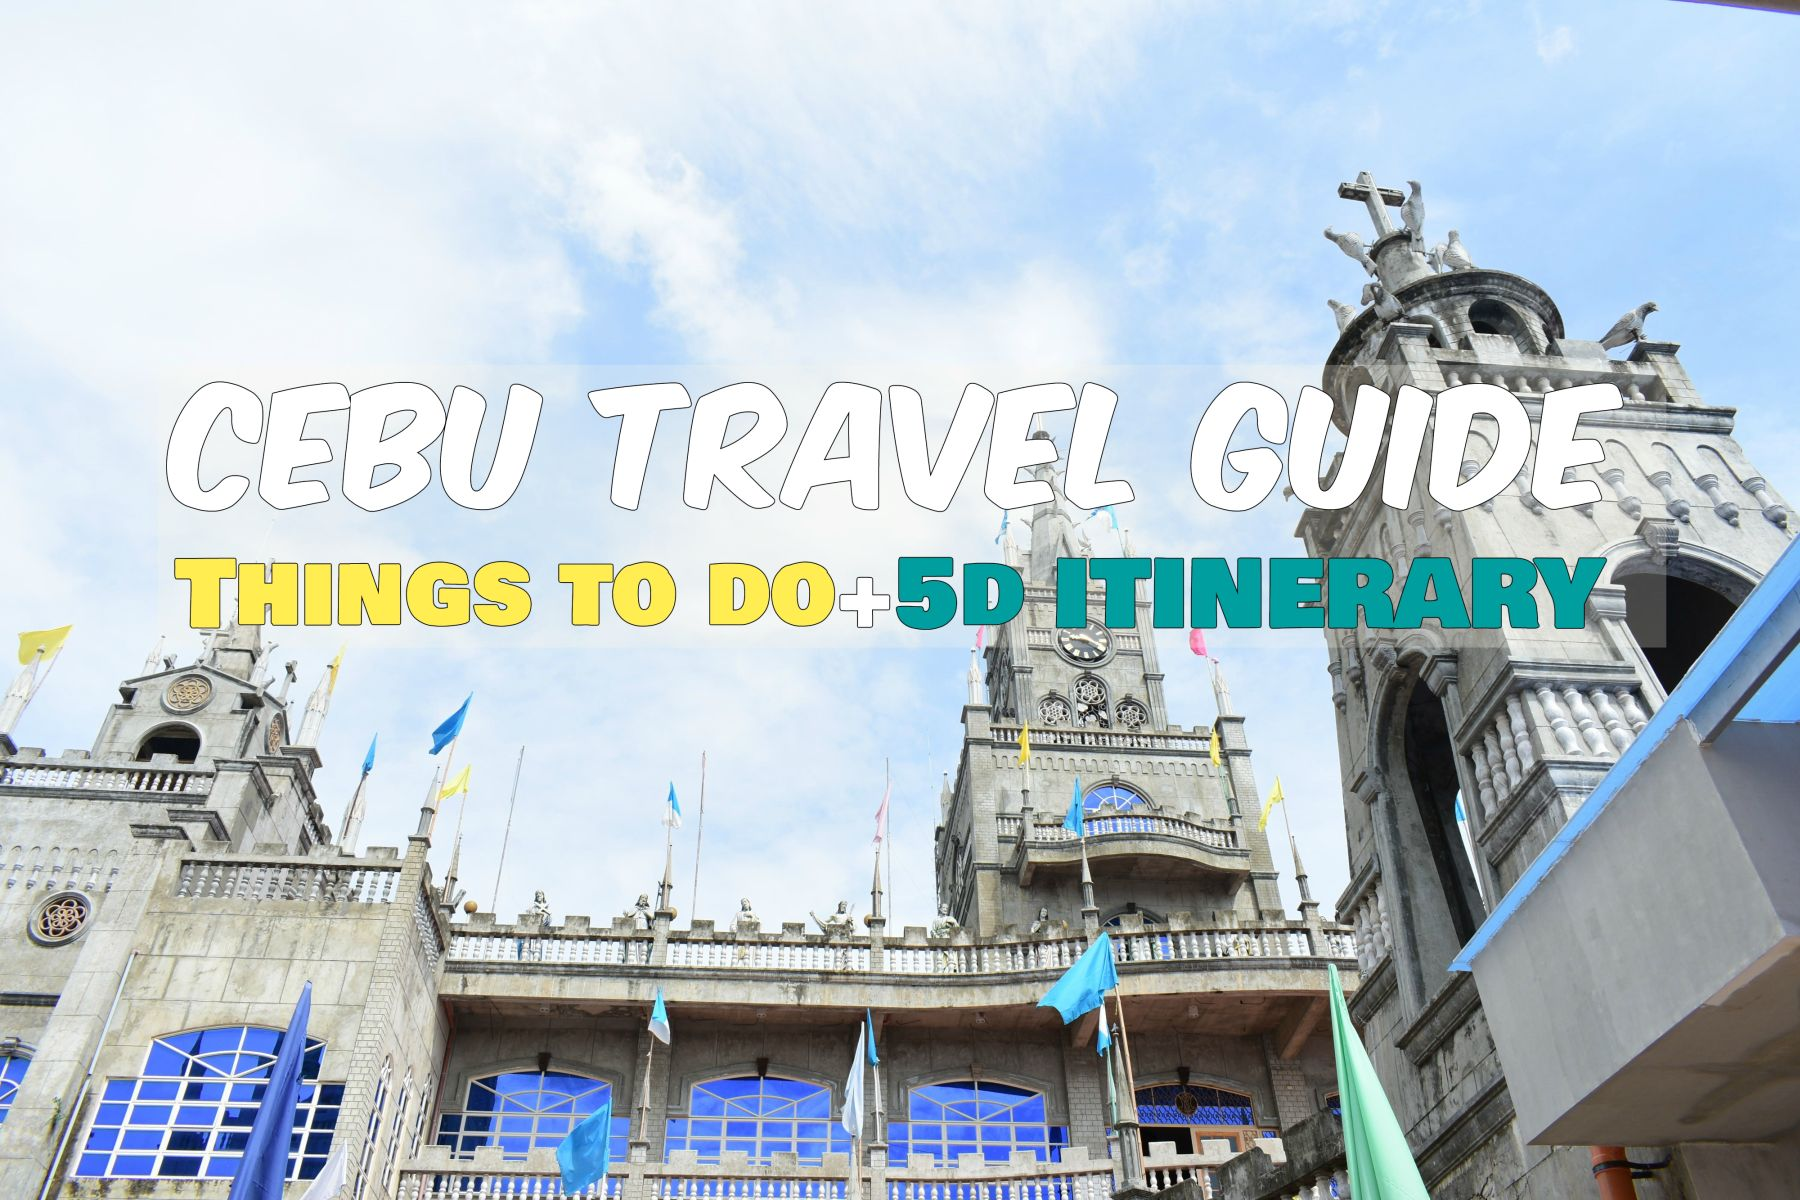 Metro Cebu and South Cebu Travel Guide